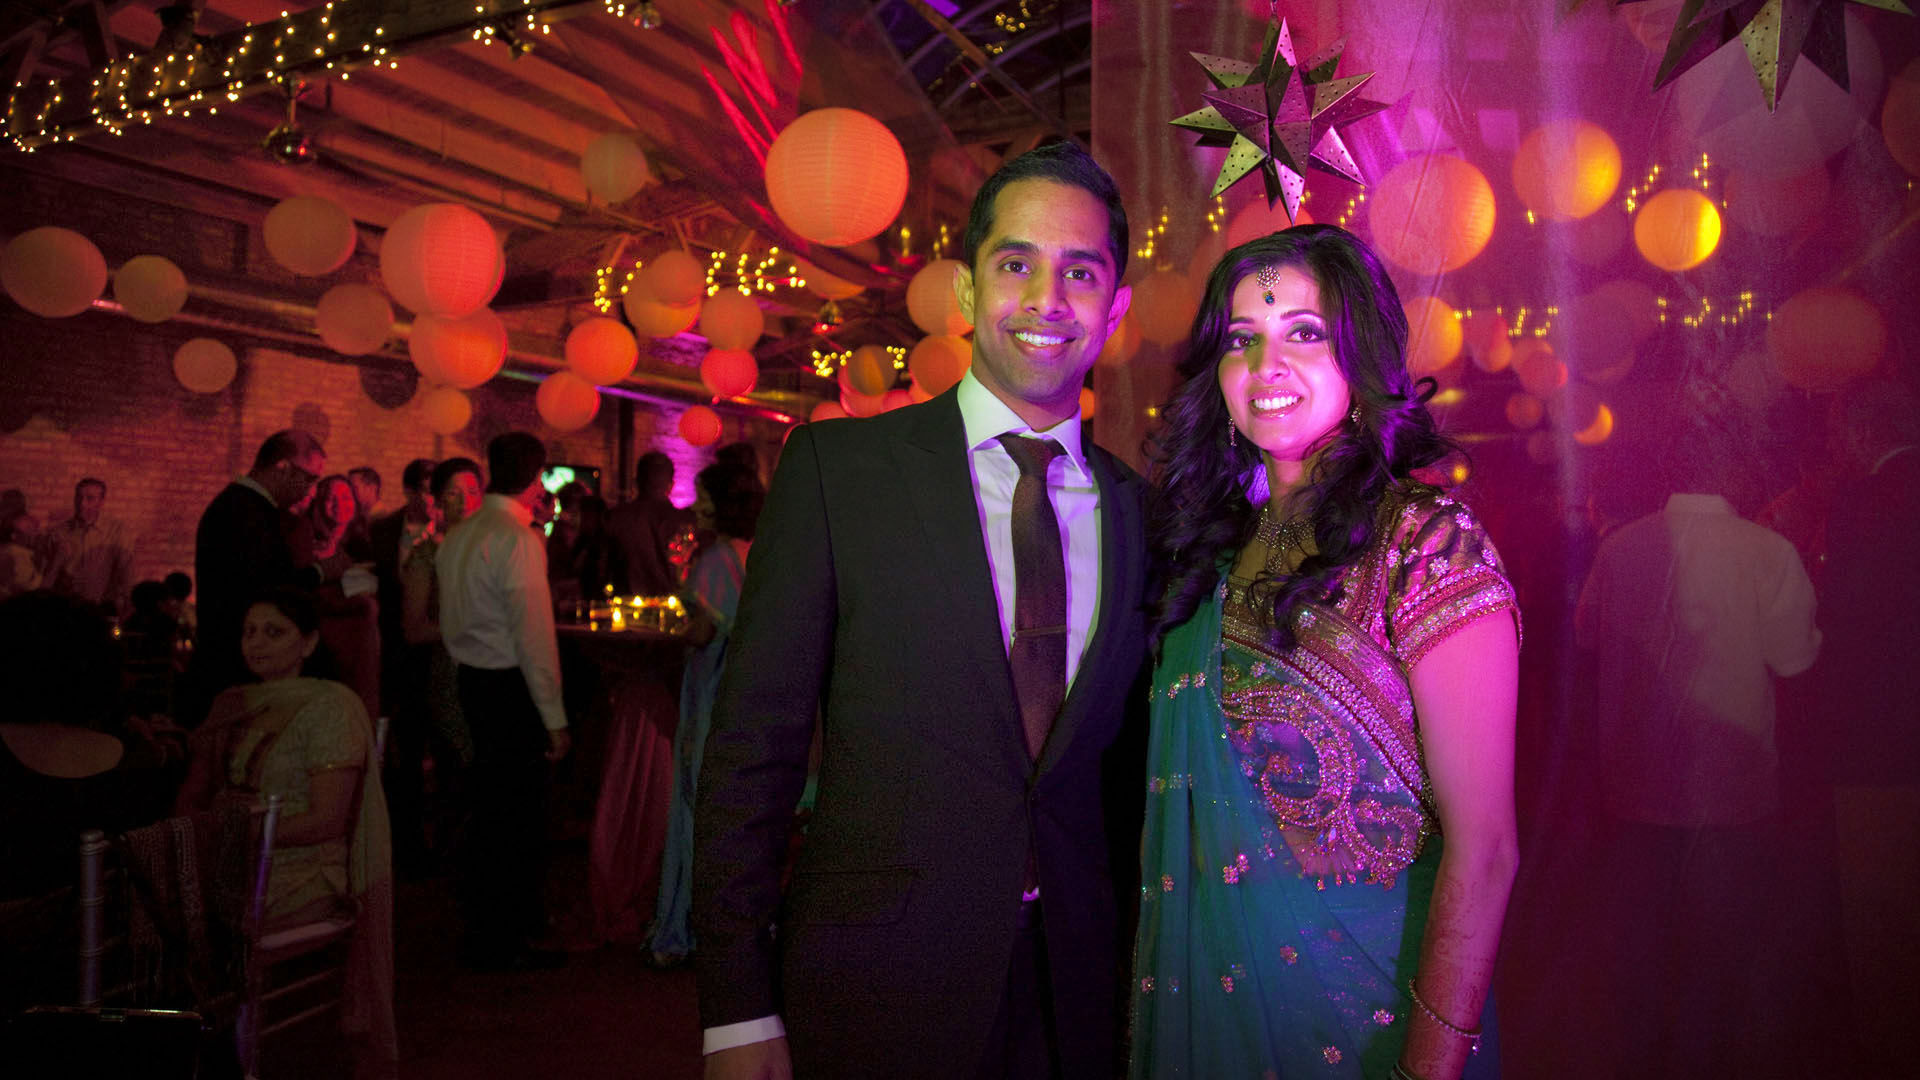 Pre & Post Wedding Events - Proposals, Engagement Parties, Bridal Showers, Sangeets, Henna Parties, Rehearsal Dinners, Anniversaries